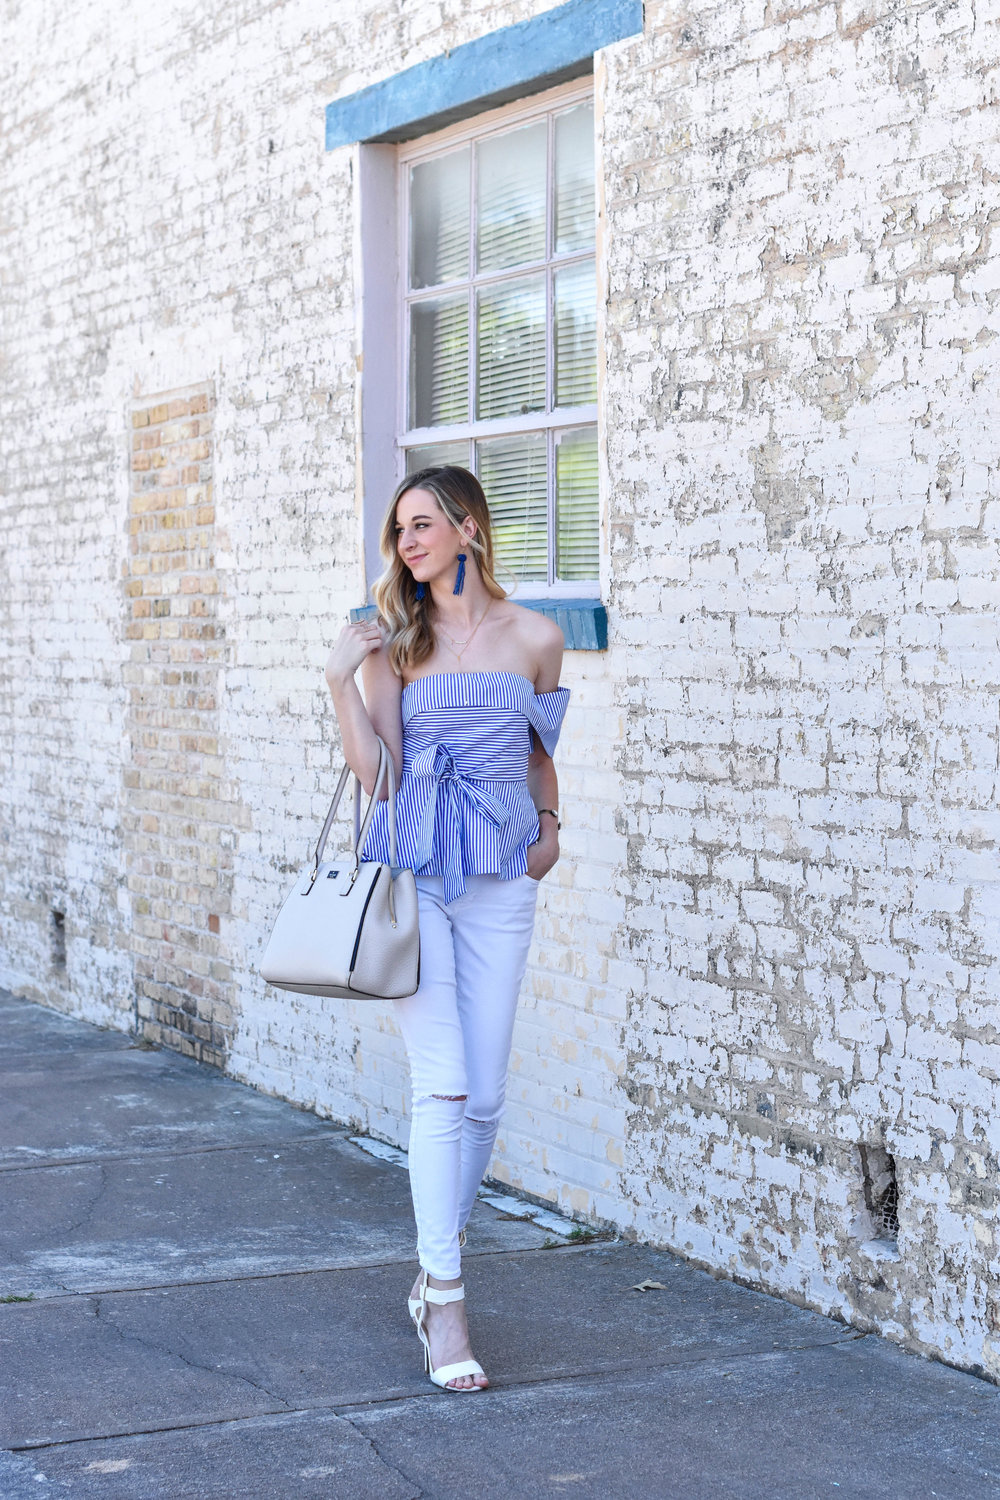 Kaily Mae: Spring into Summer Austin Fashion 2